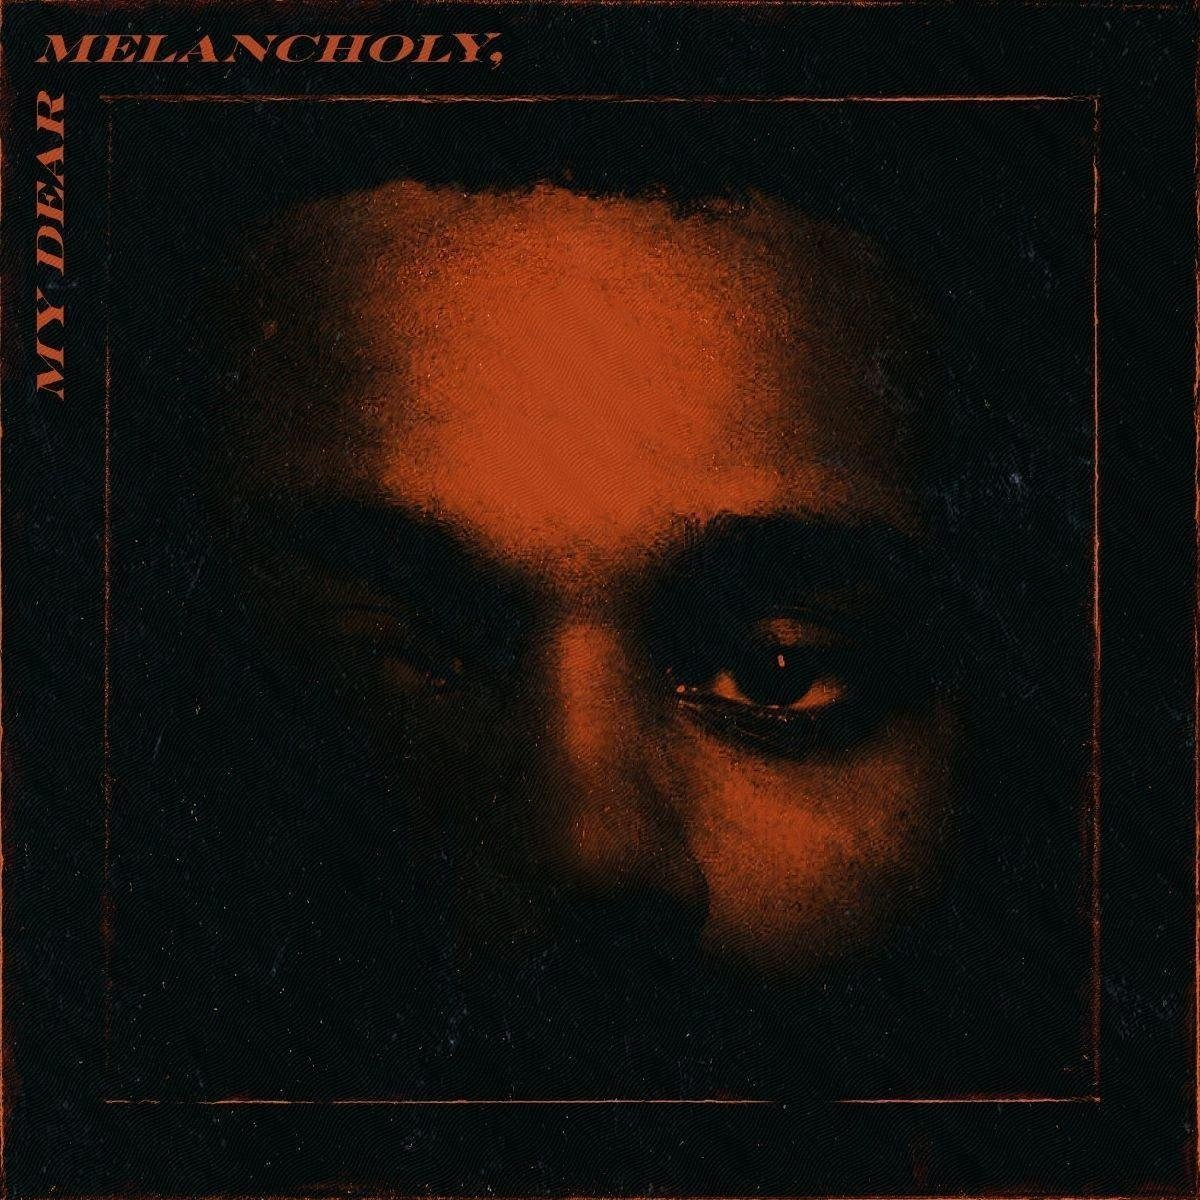 My Dear Melancholy by The Weeknd image